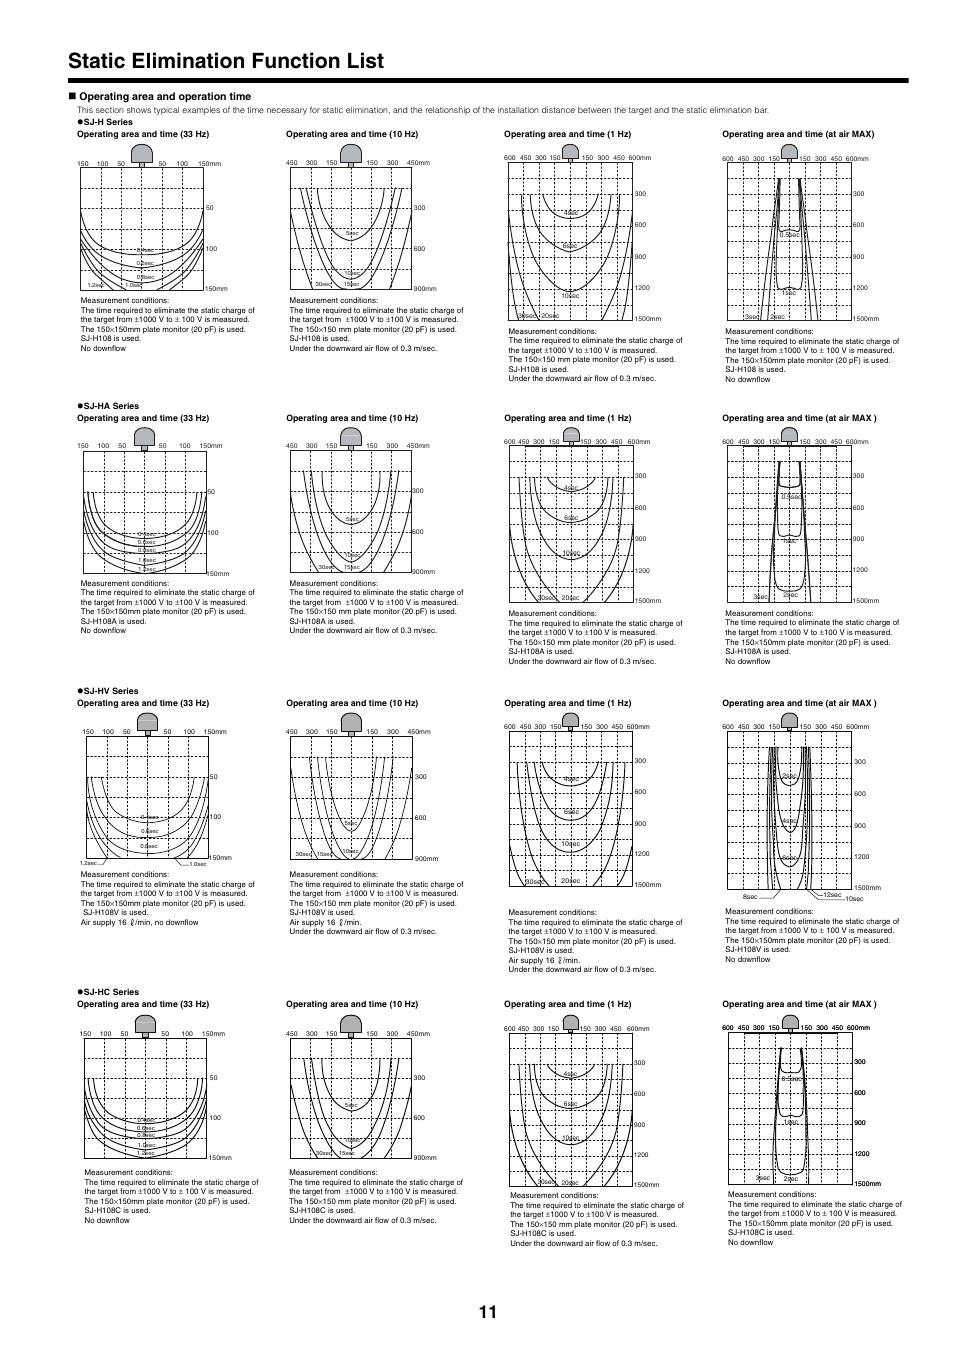 Static elimination function list, Operating area and